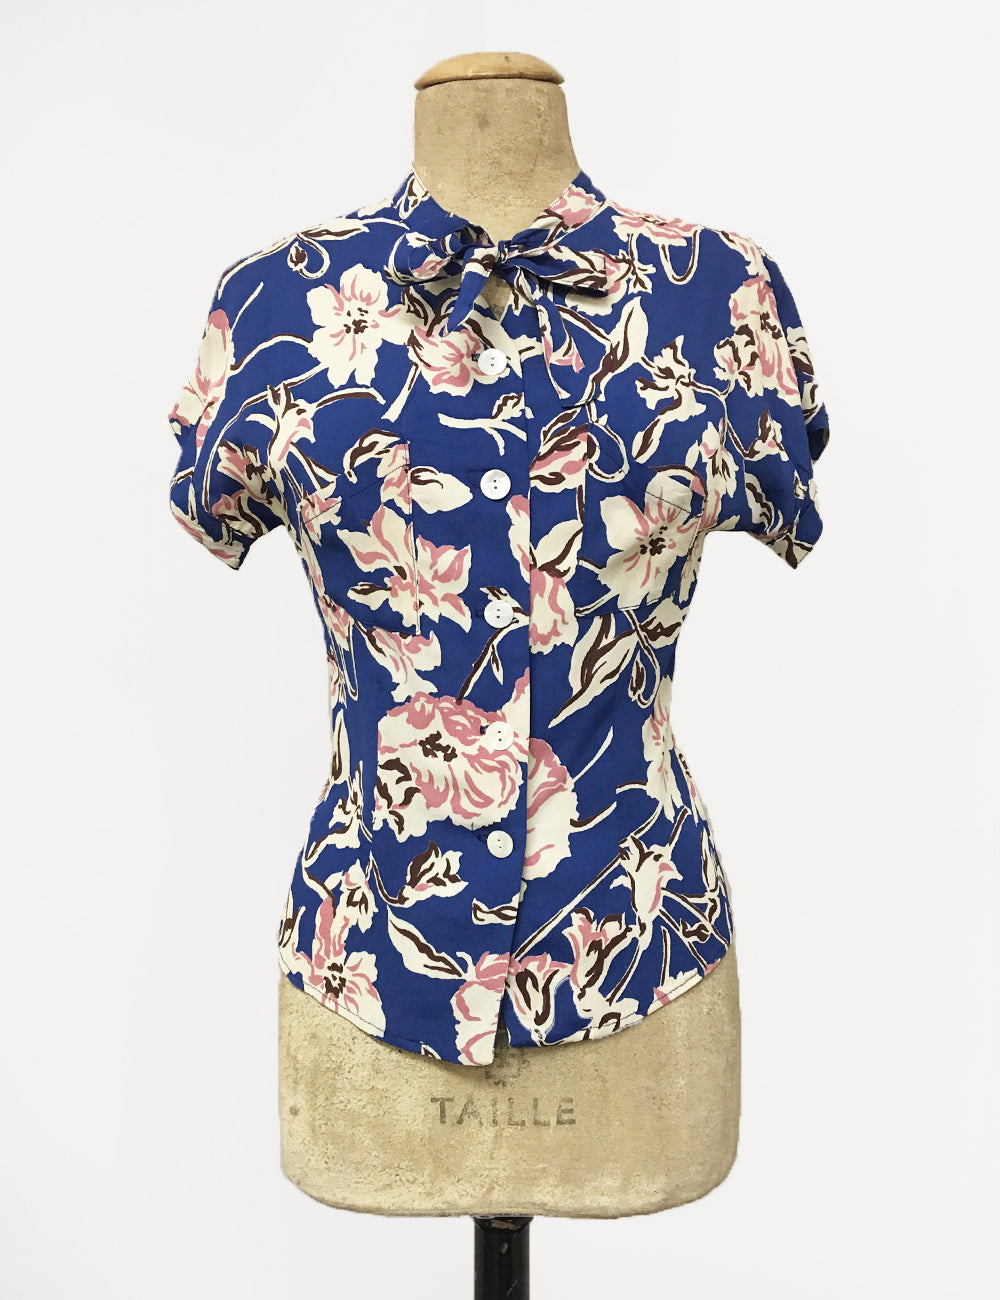 Blue Deco Floral Print 1940s Style Amanda Tie Blouse - FINAL SALE